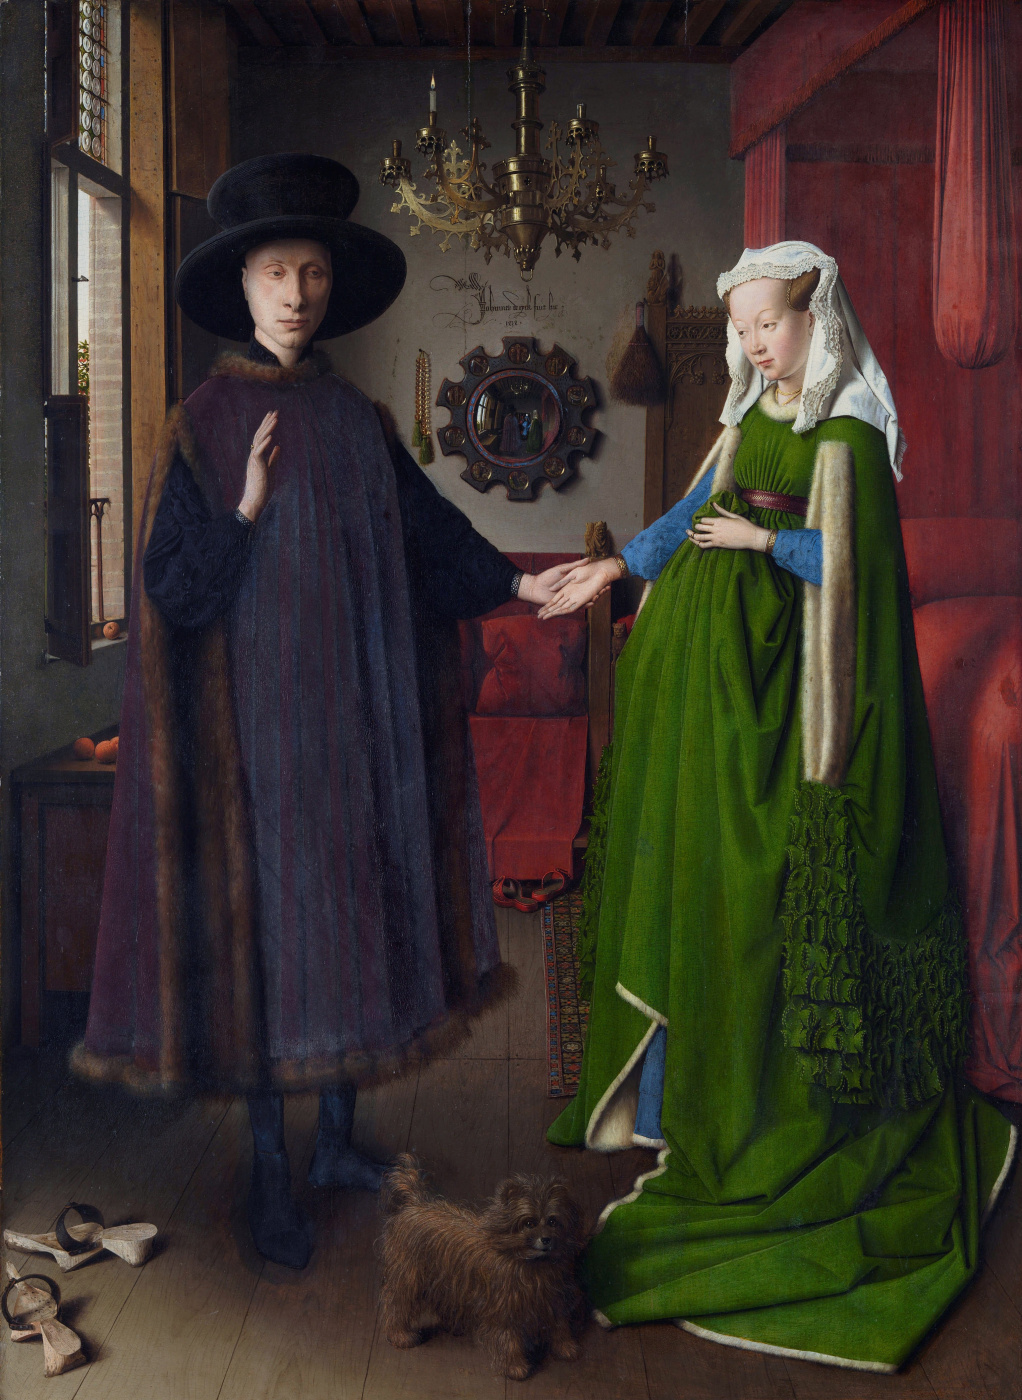 Jan van Eyck. The Arnolfini portrait